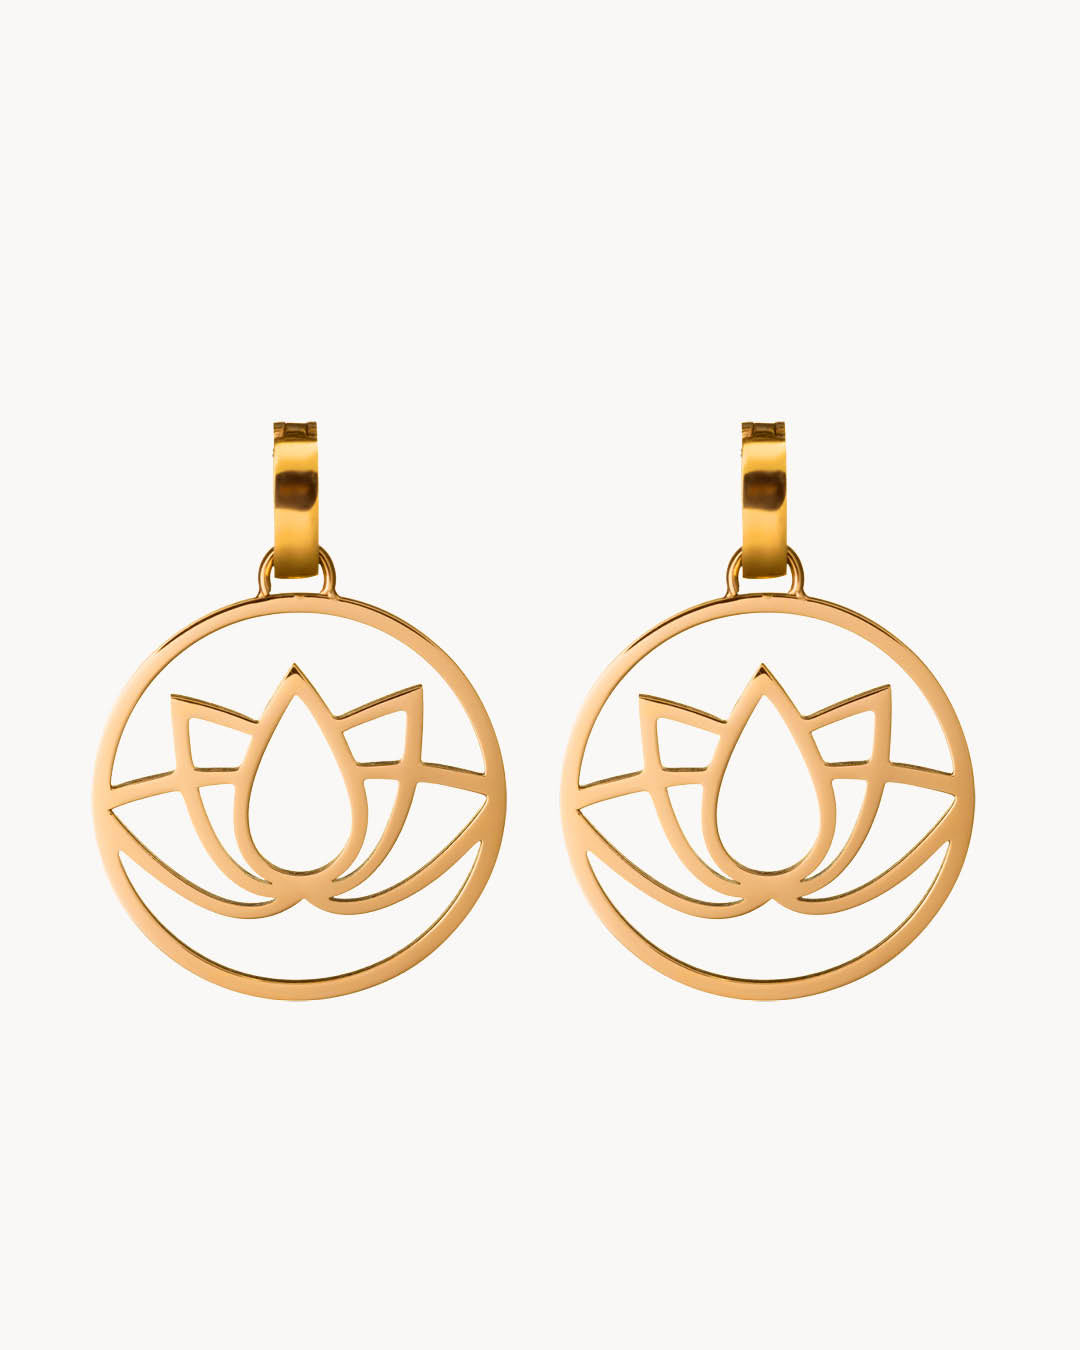 Pendentifs Boucle D'oreille Lotus in Bloom, Or